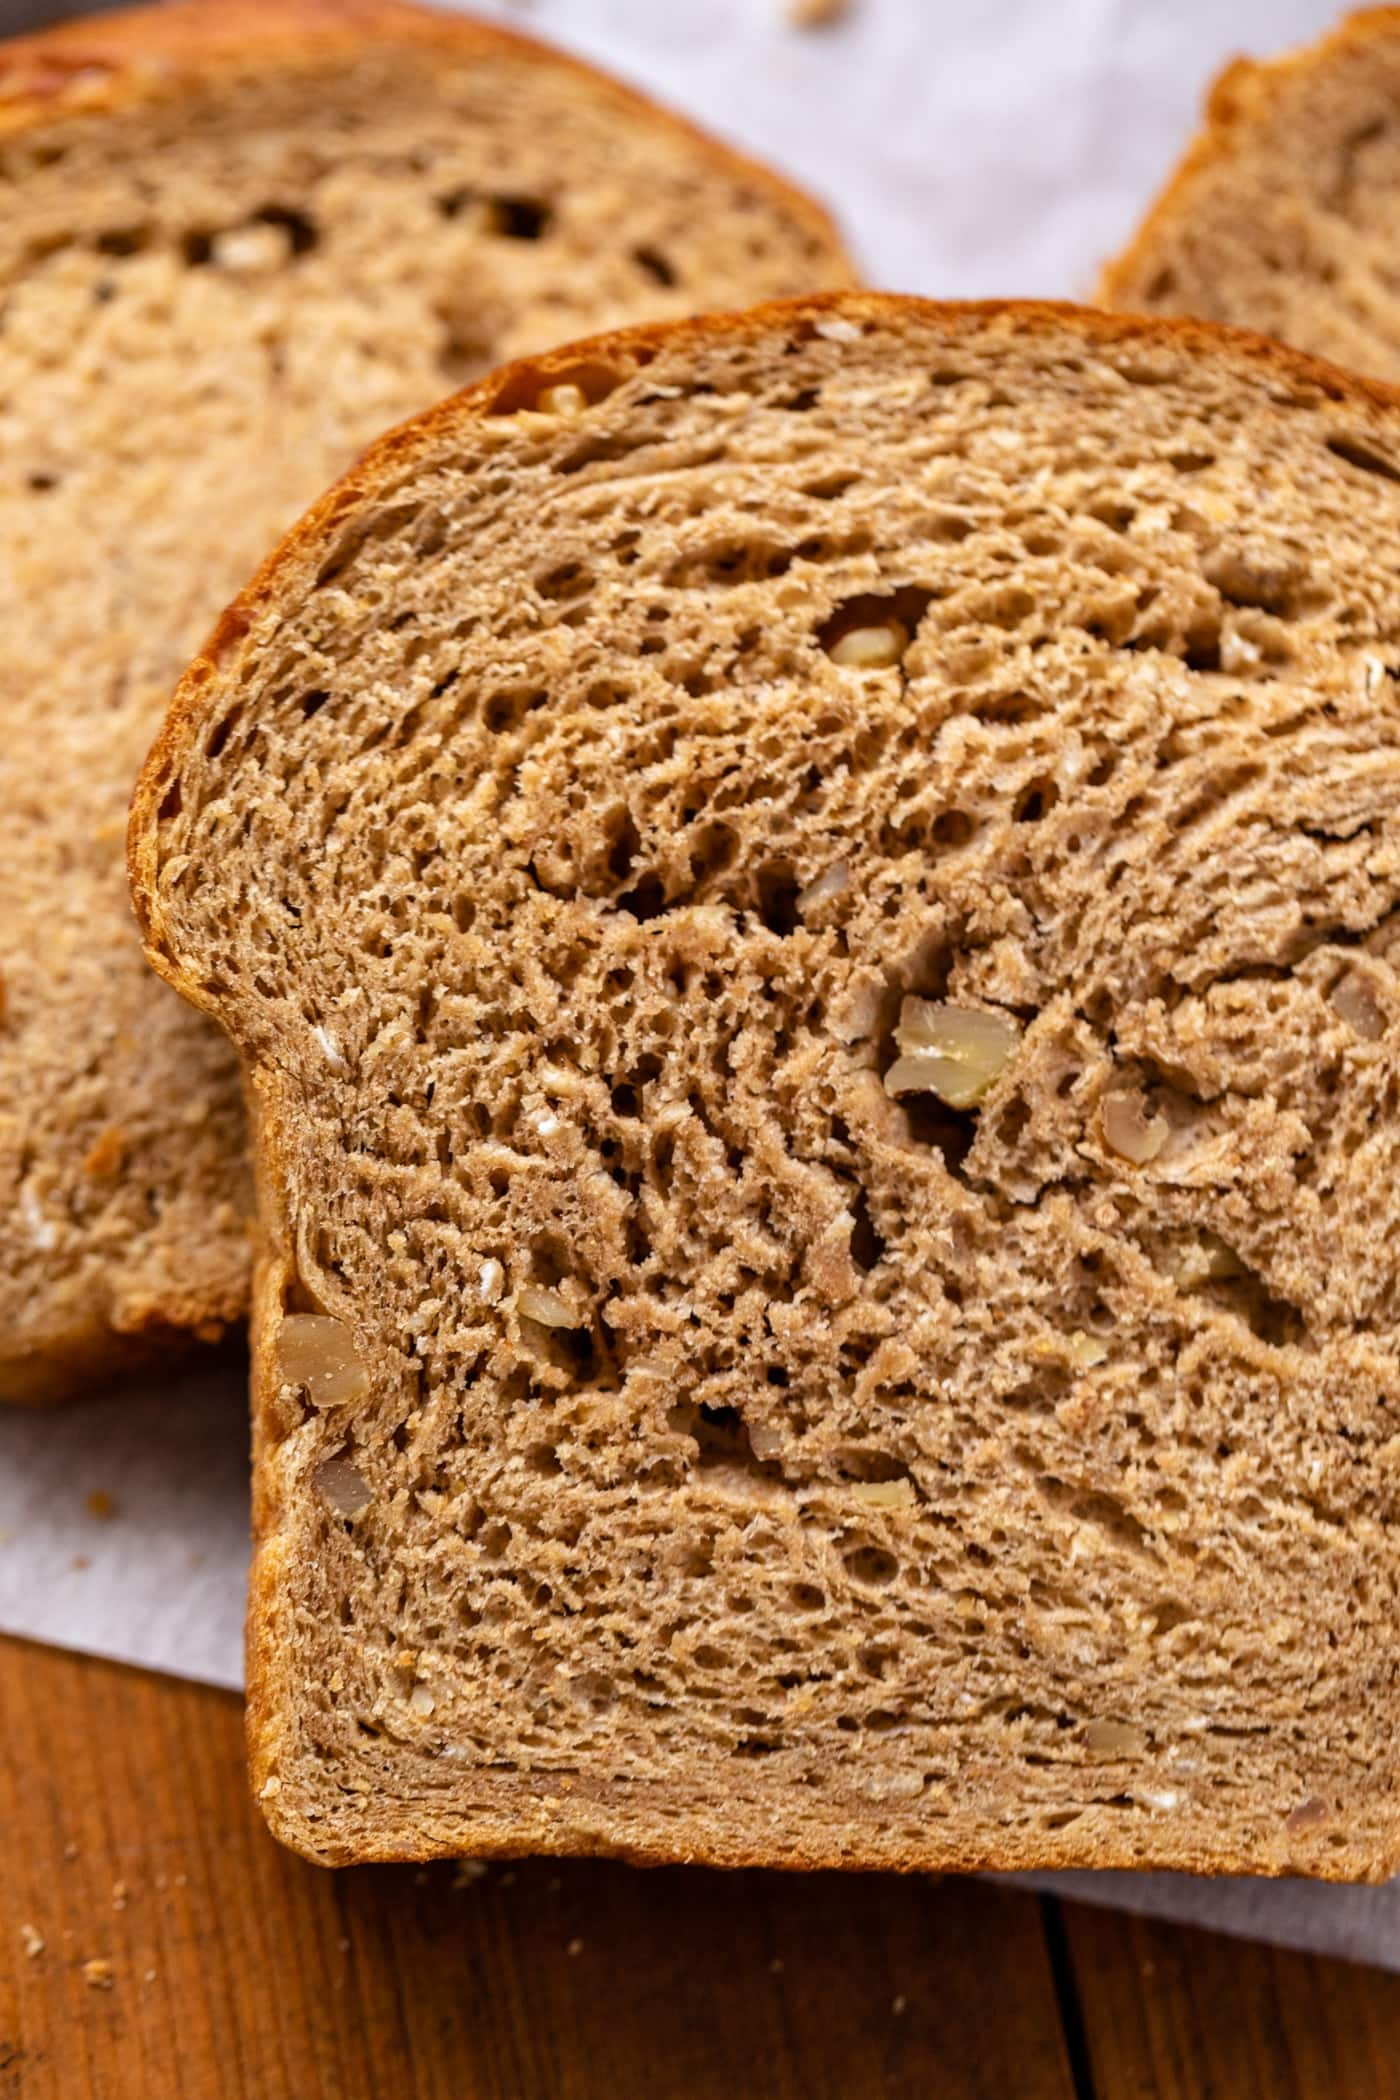 Close up view of inside of one piece of hearty grain bread with extra slices of bread in background on wood surface with parchment underneat